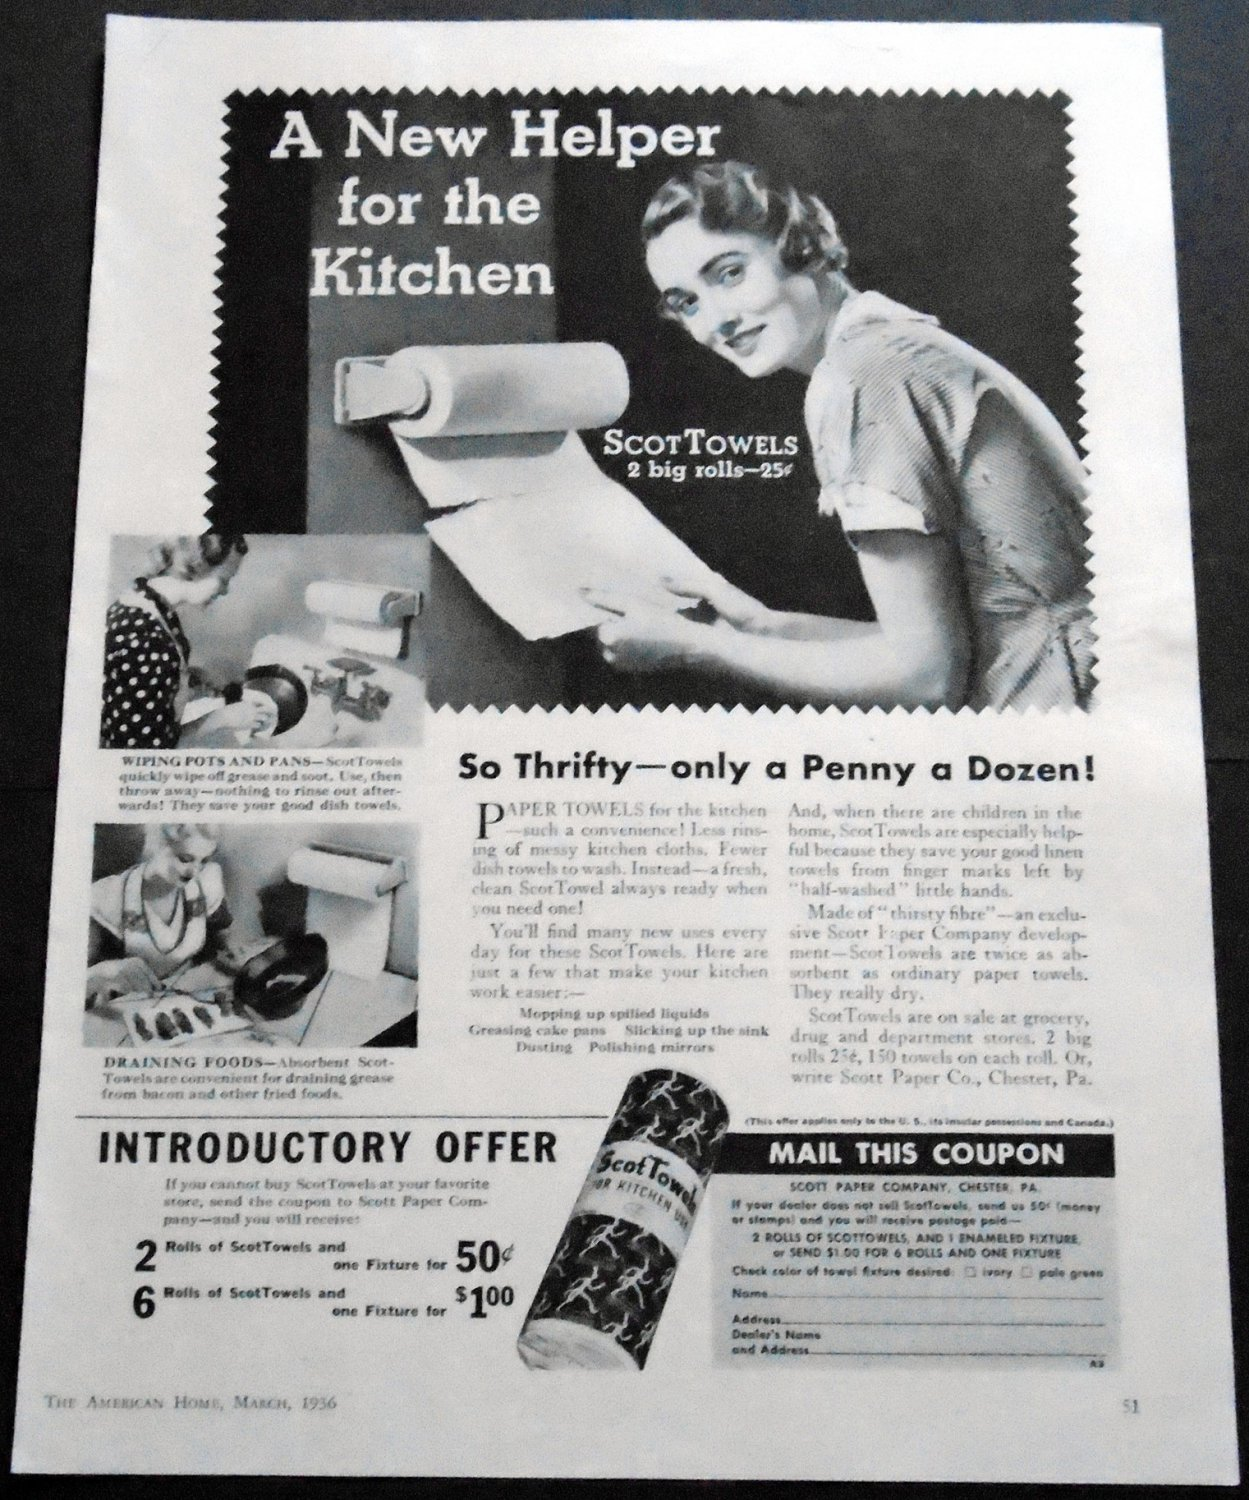 Vintage 1936 Scott Paper Company Chester PA ScotTowels Towel Kitchen Helper 1930s Print Ad Advert